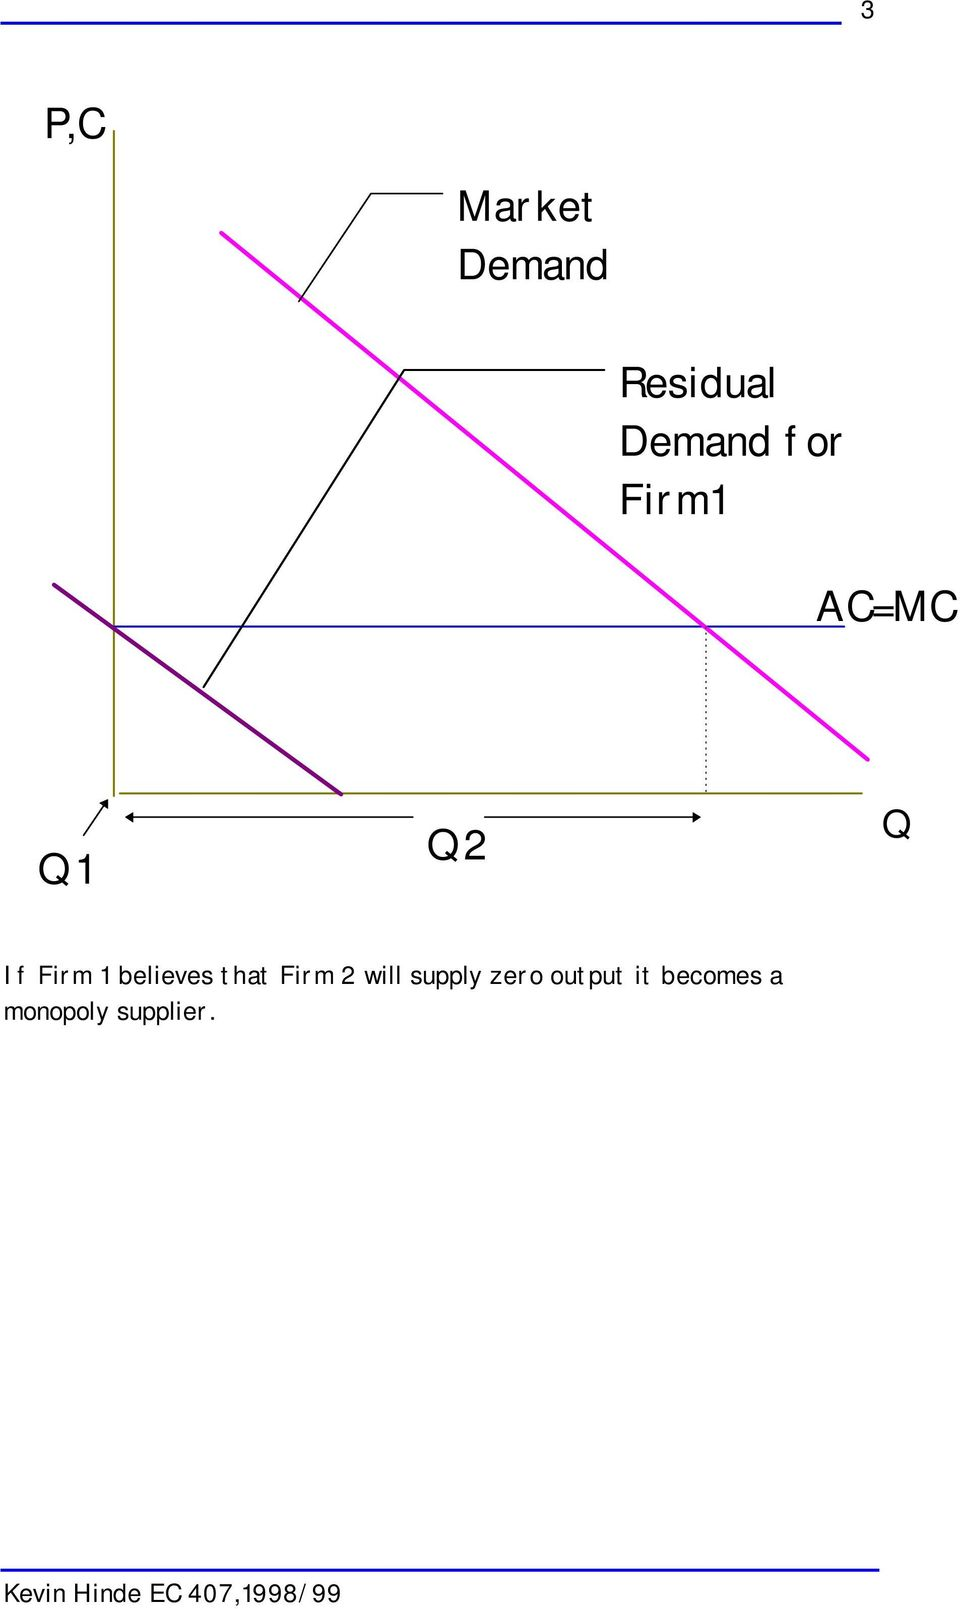 Firm 2 will supply zero output it becomes a